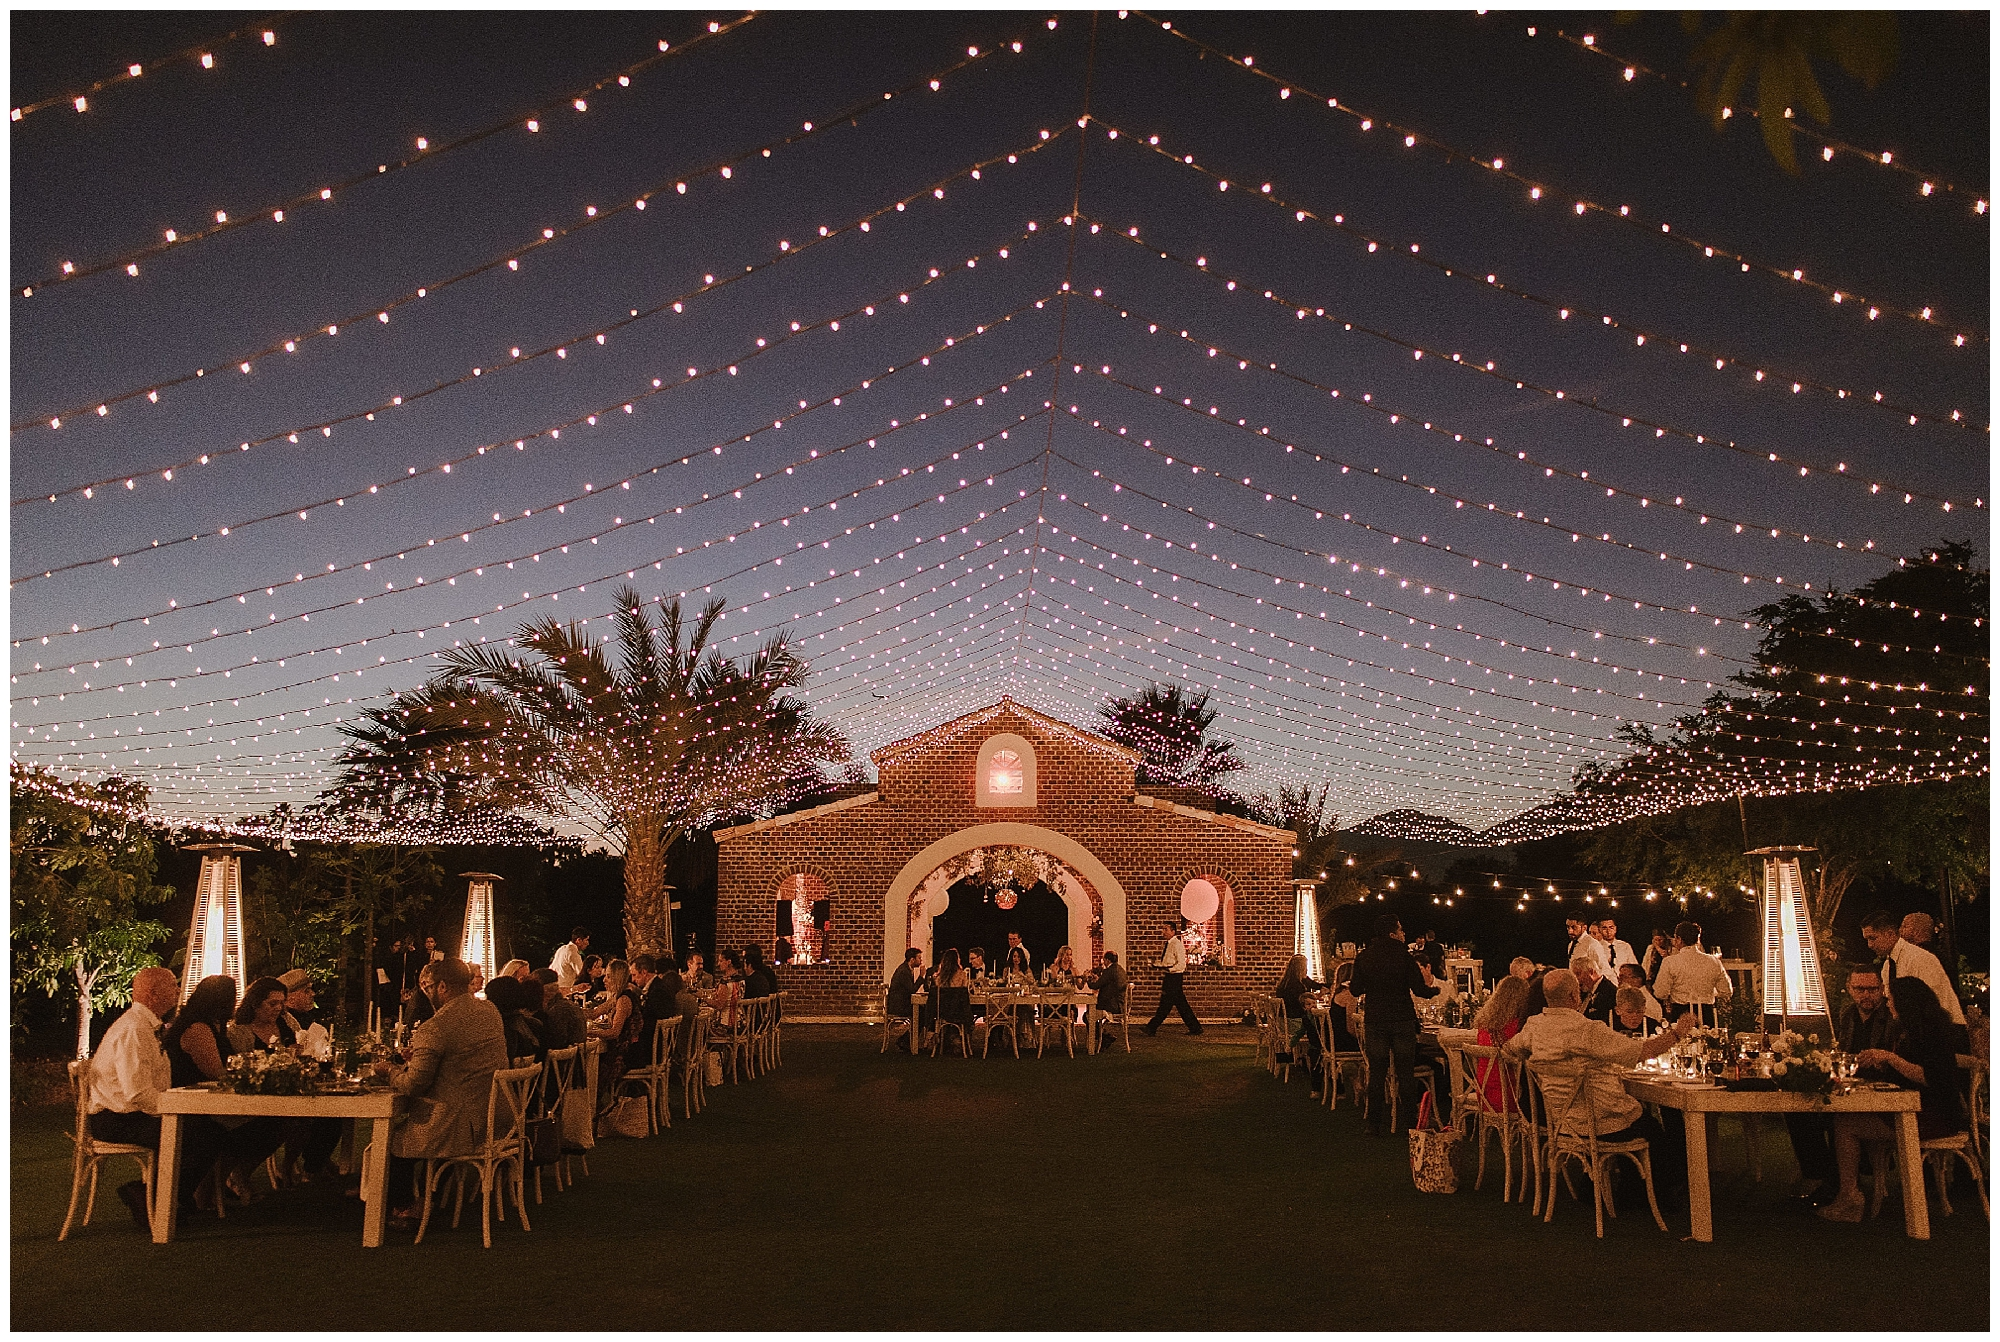 Wow - the lighting looks like stars in the sky - truly a beautiful Cabo wedding celebration